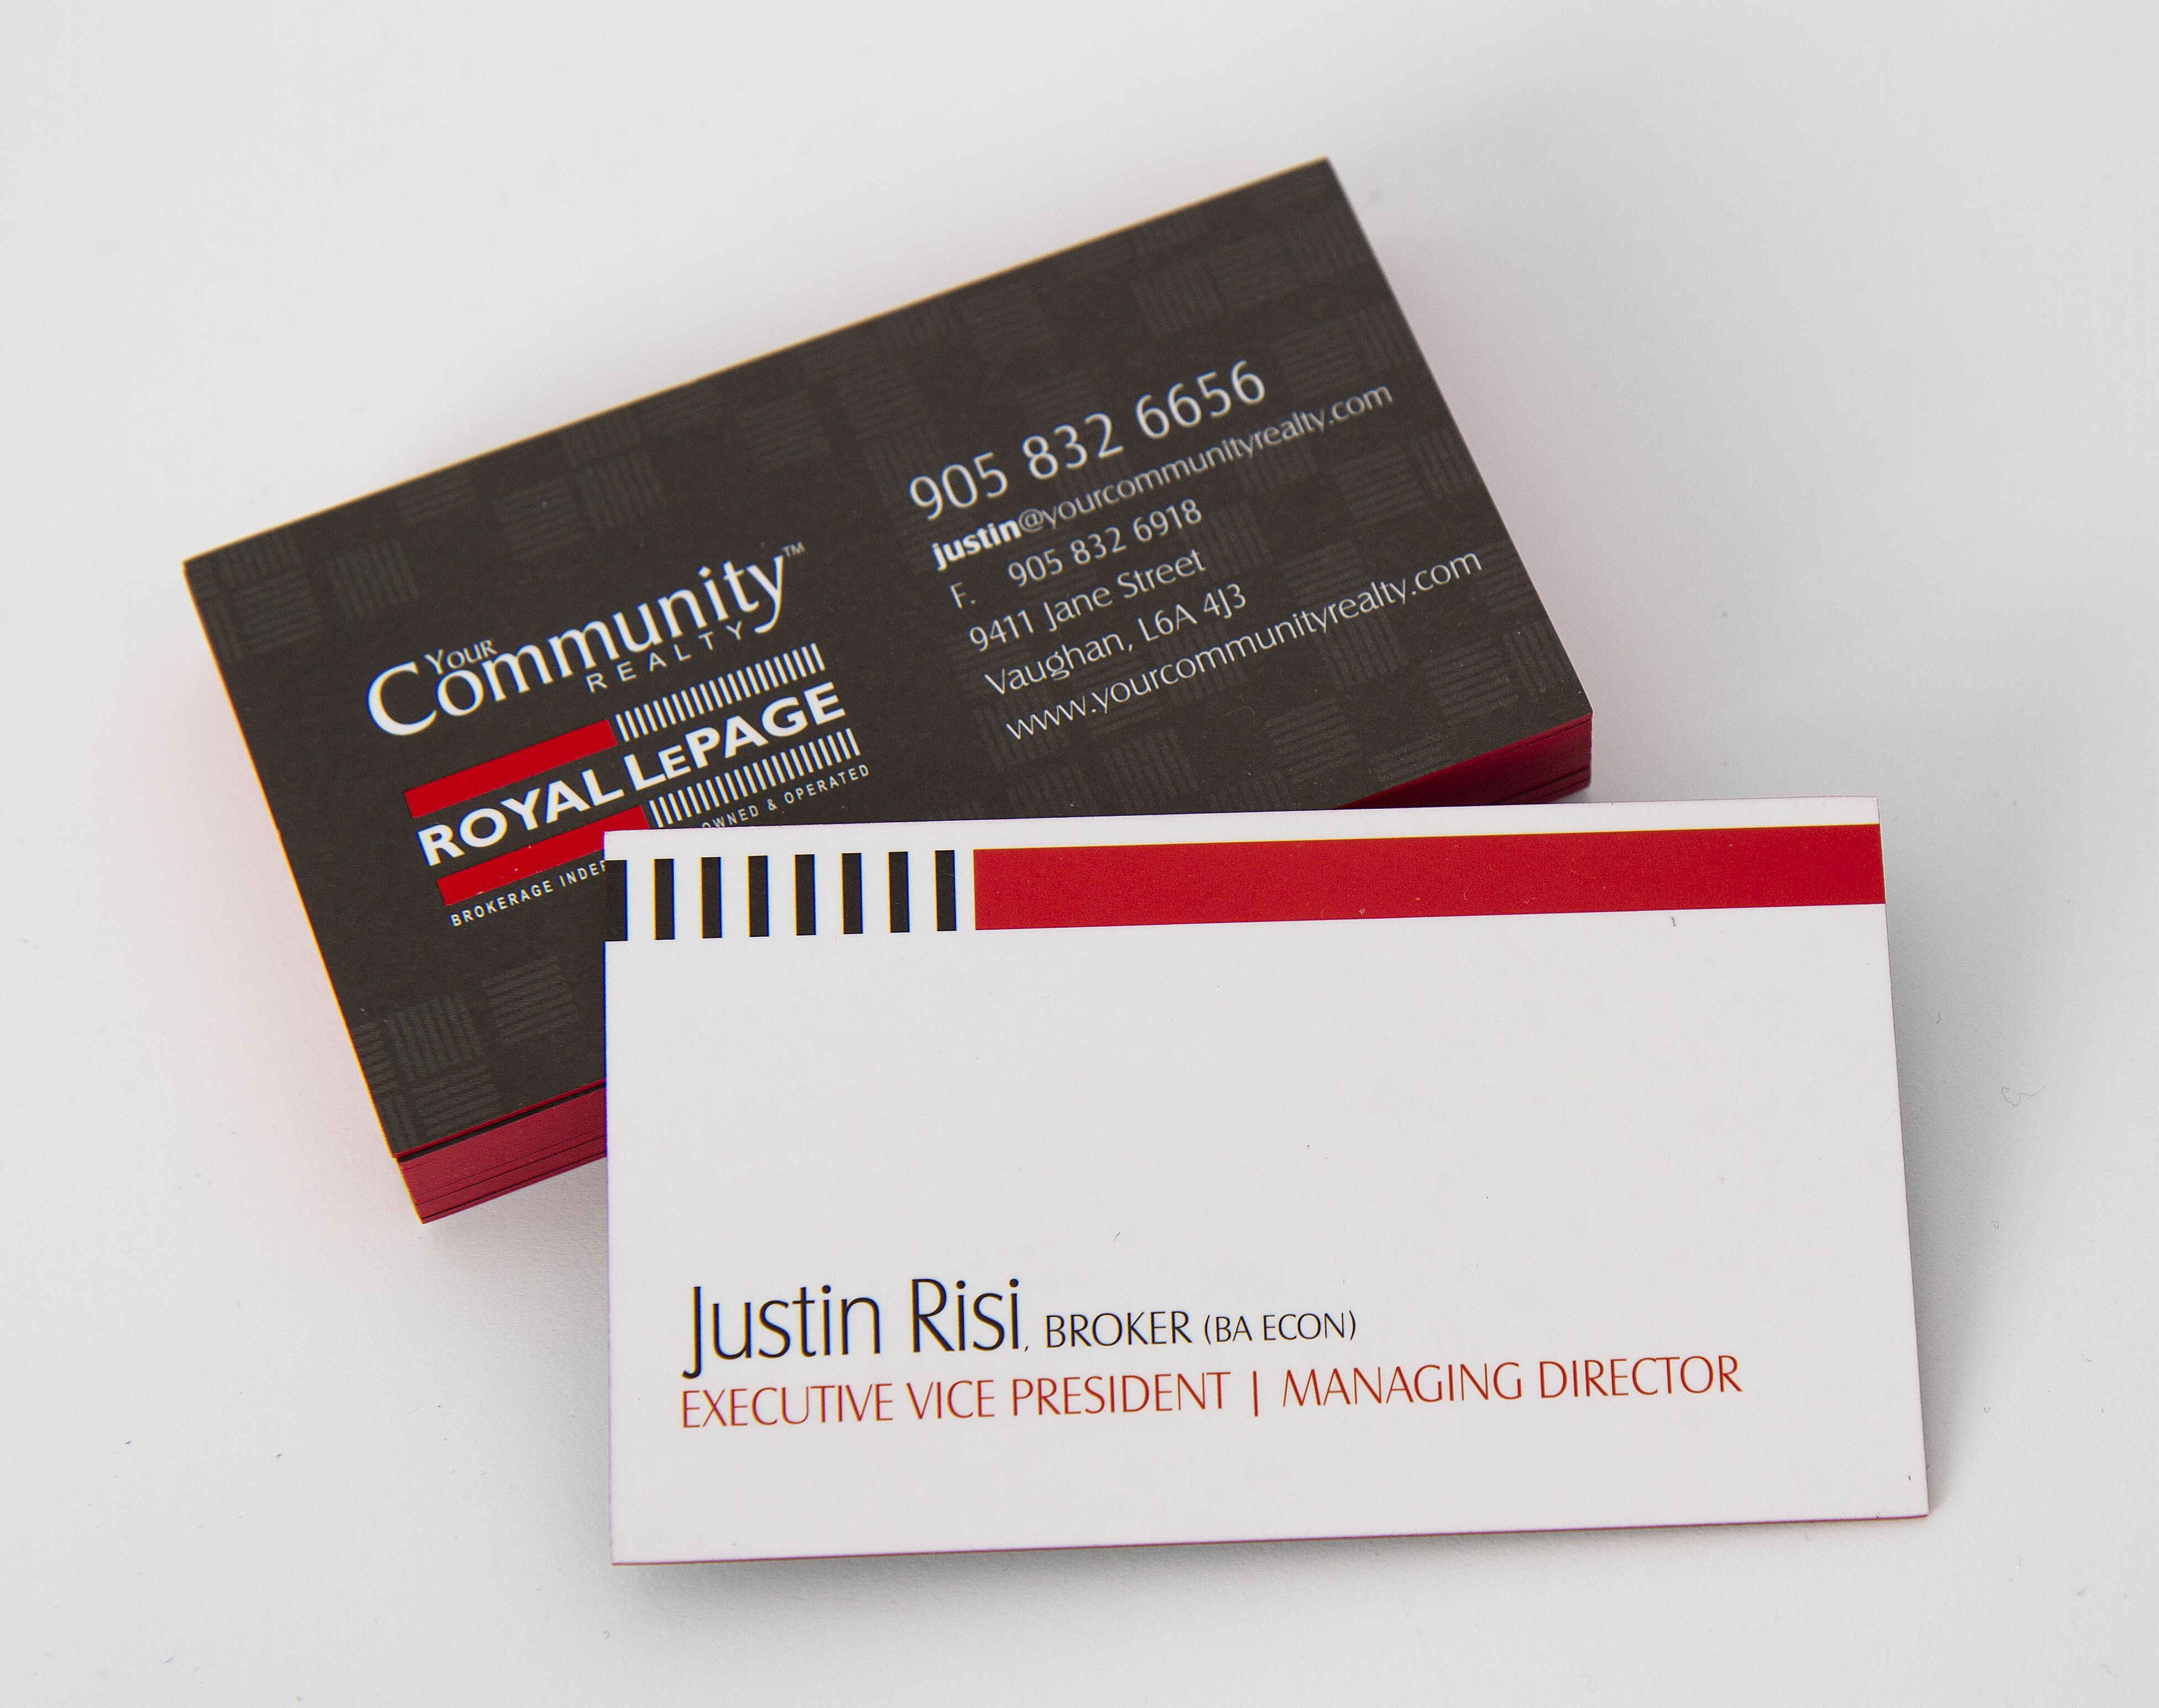 royal lepage business card with red colour edging